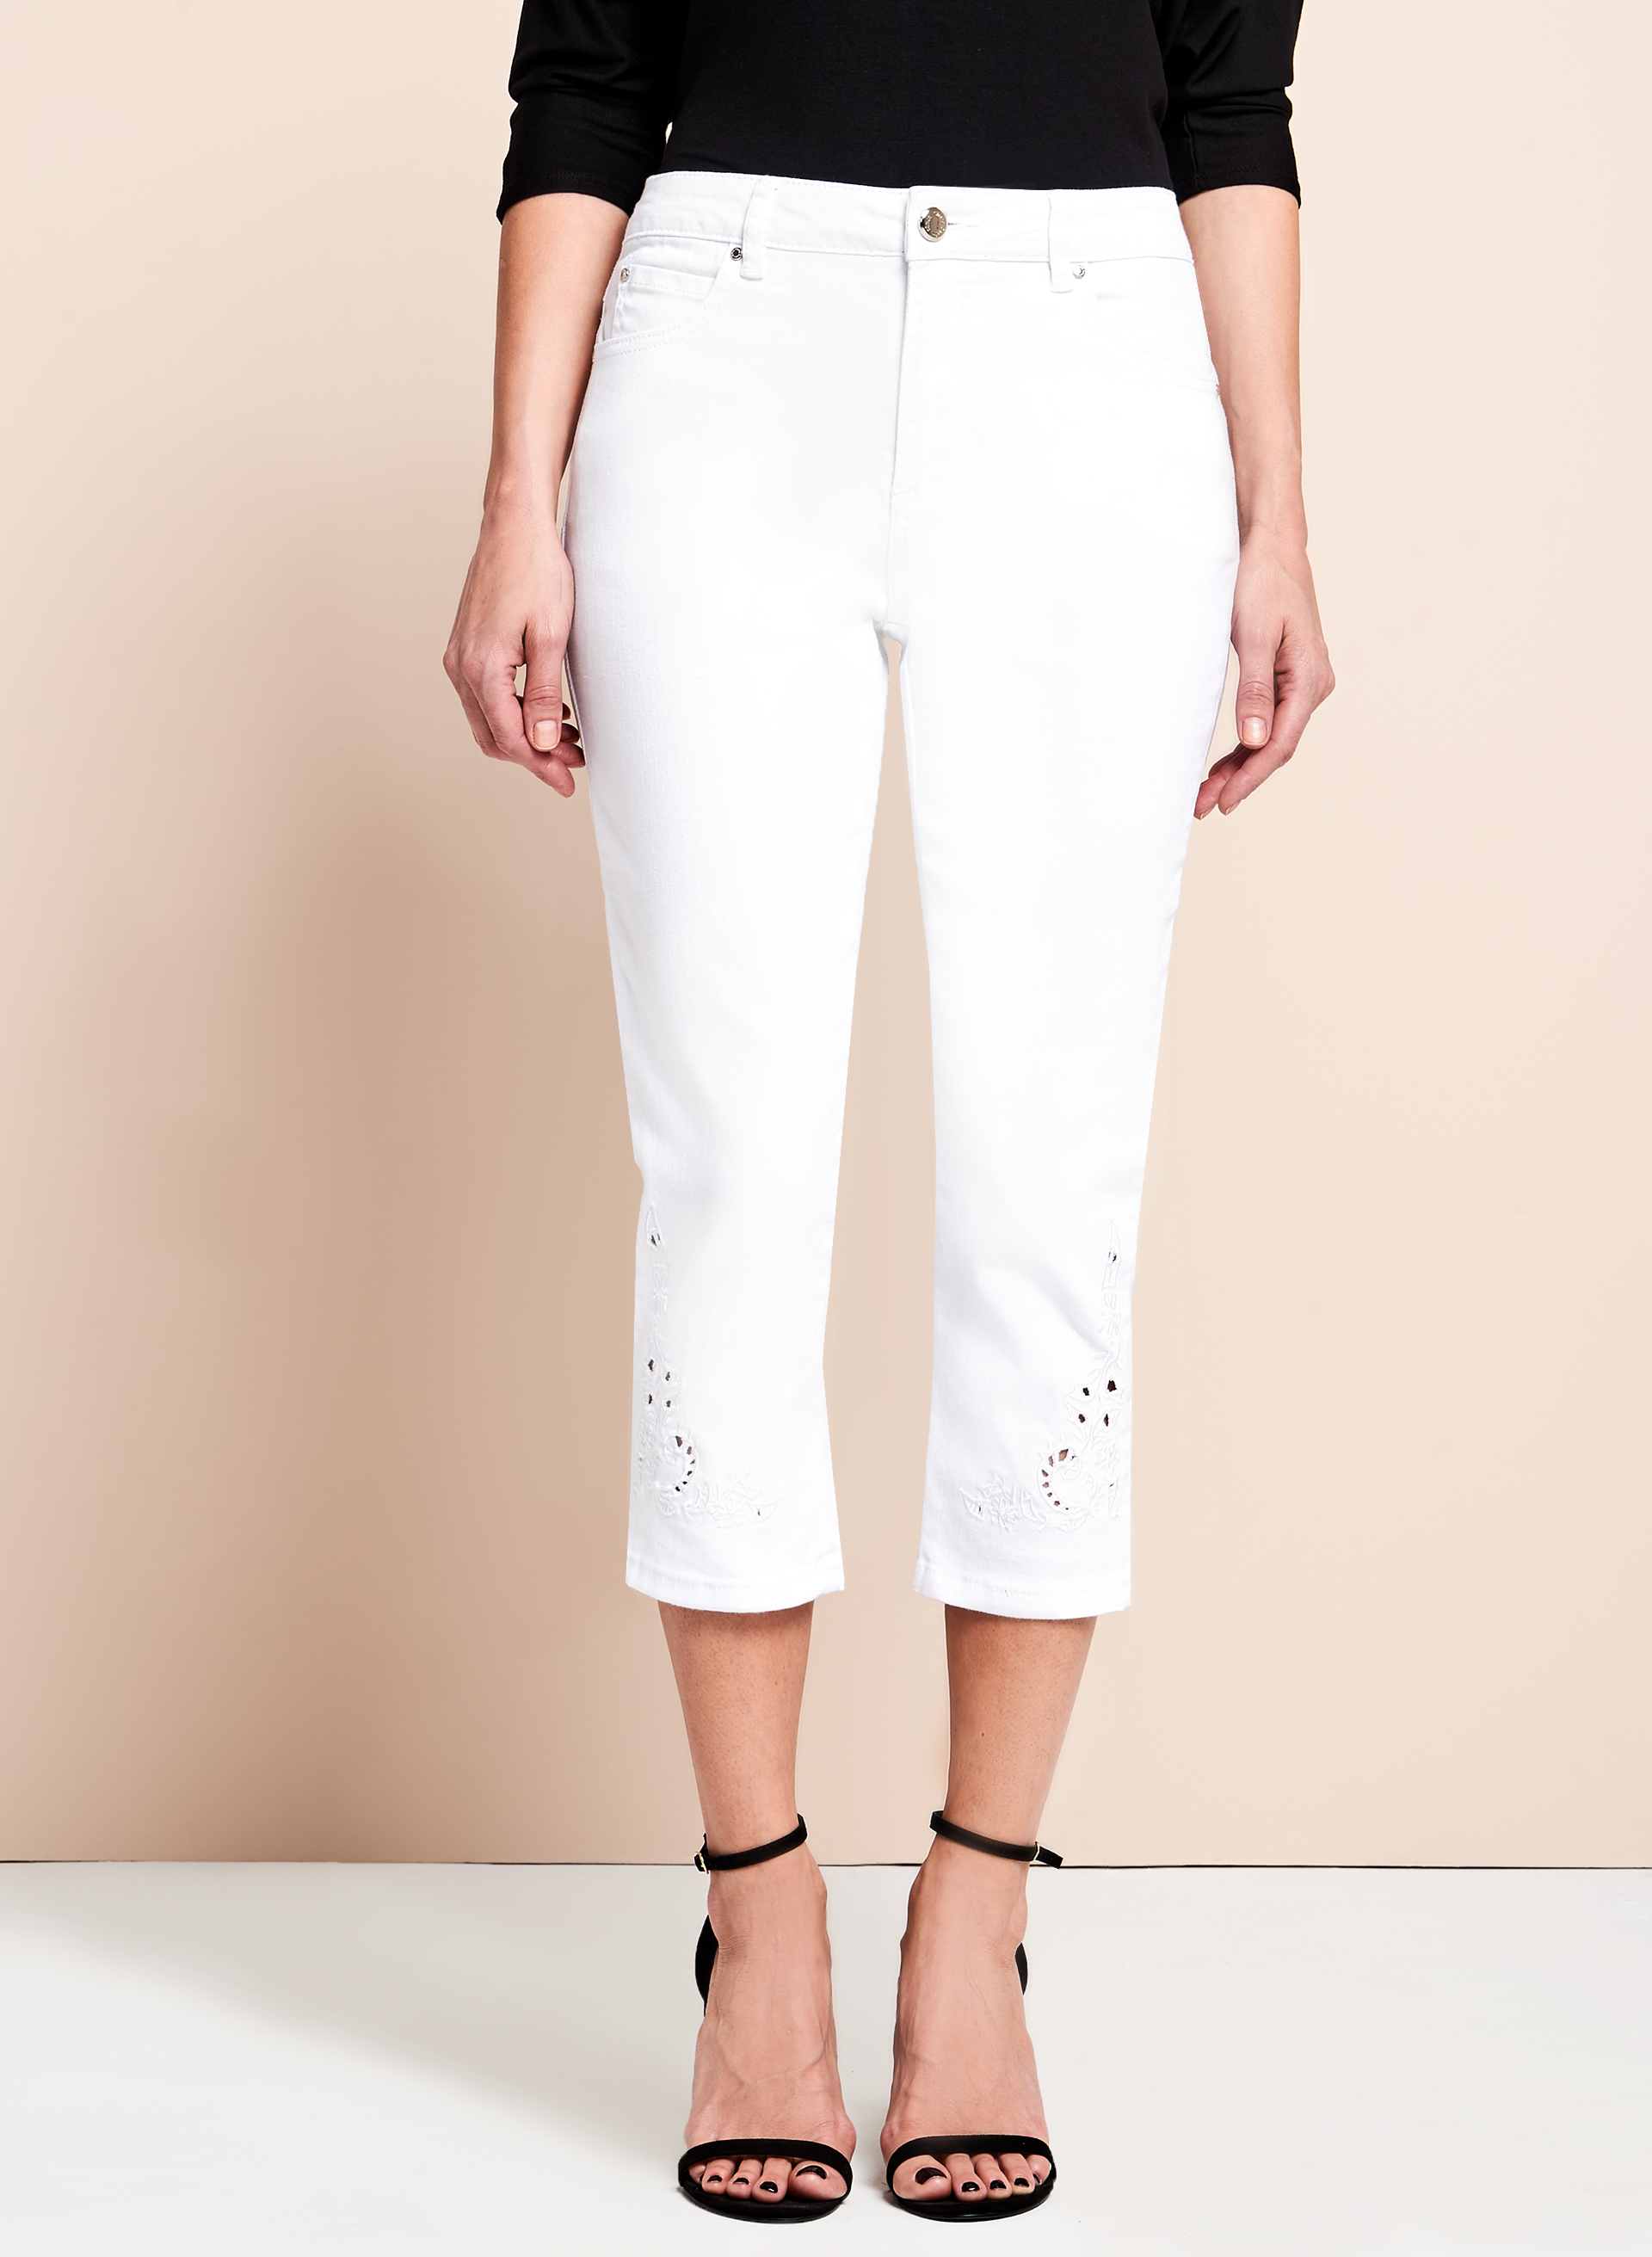 Simon Chang - Cotton Capri Pants, White, hi-res